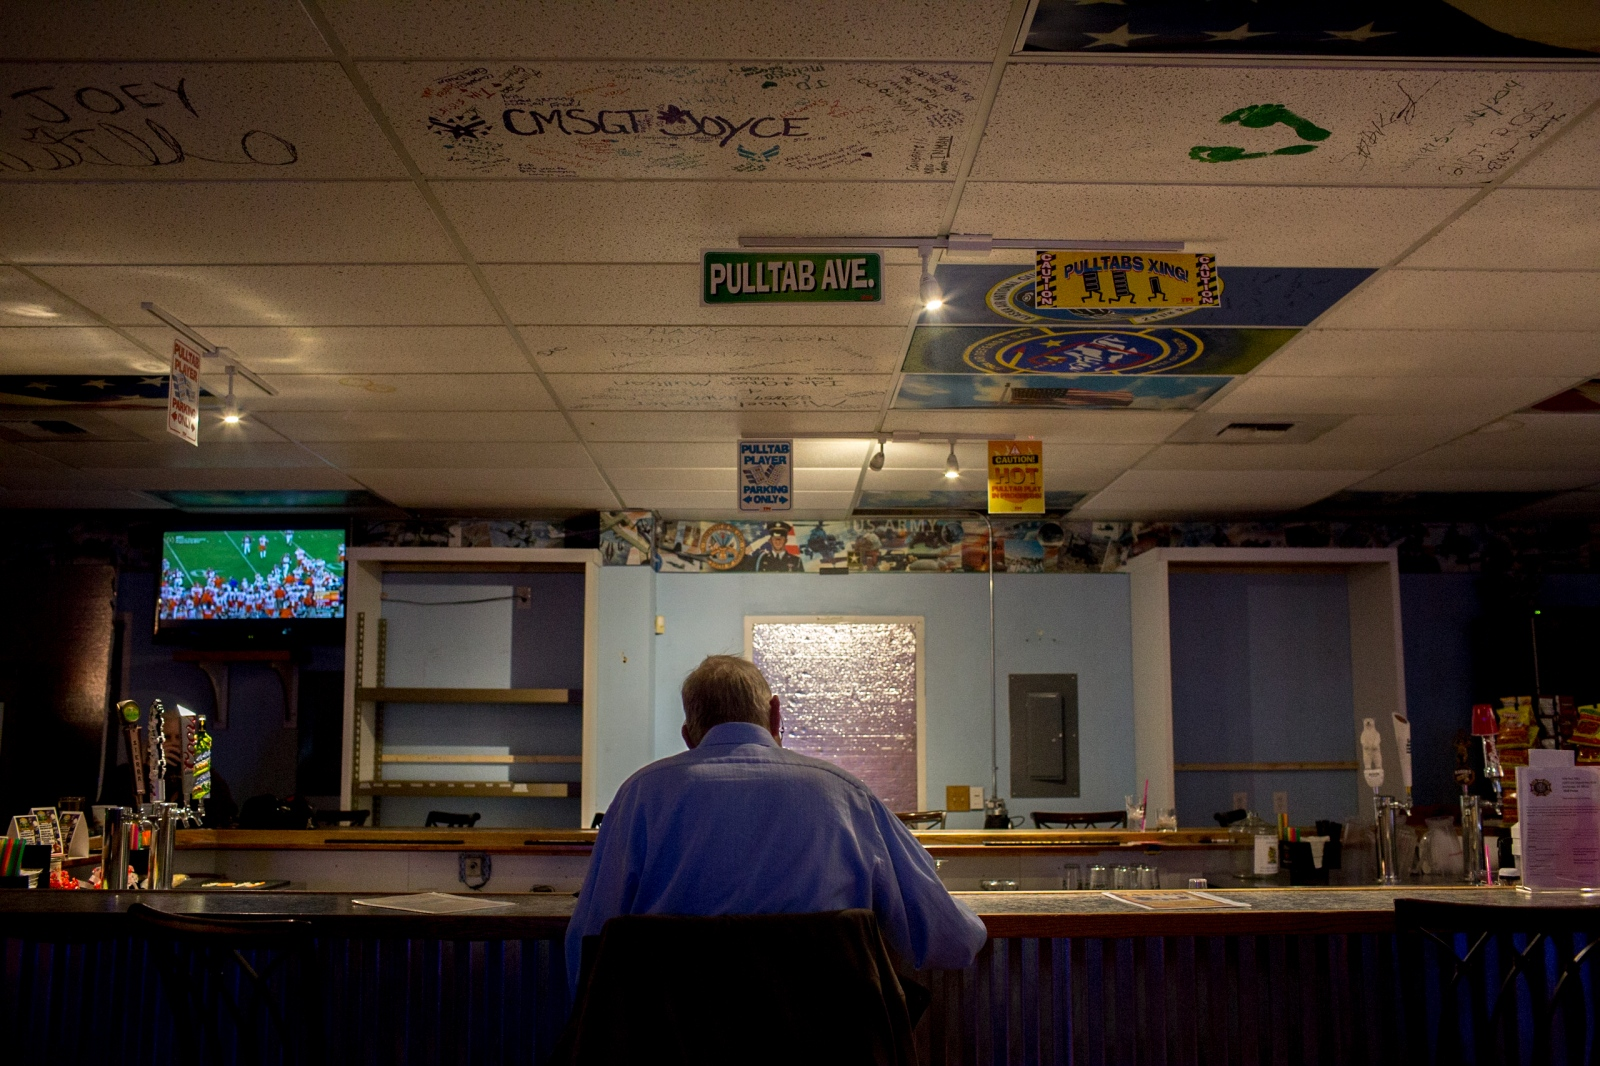 Joe Federmann, 71, sits at the bar at VFW Post 9981 on football night. Federmann moved with his family to Alaska after he returned from serving in the Vietnam war. He says that there are a lot of reasons he's stayed in Alaska; he finds being in nature peaceful and loves the fishing and large community of veterans.